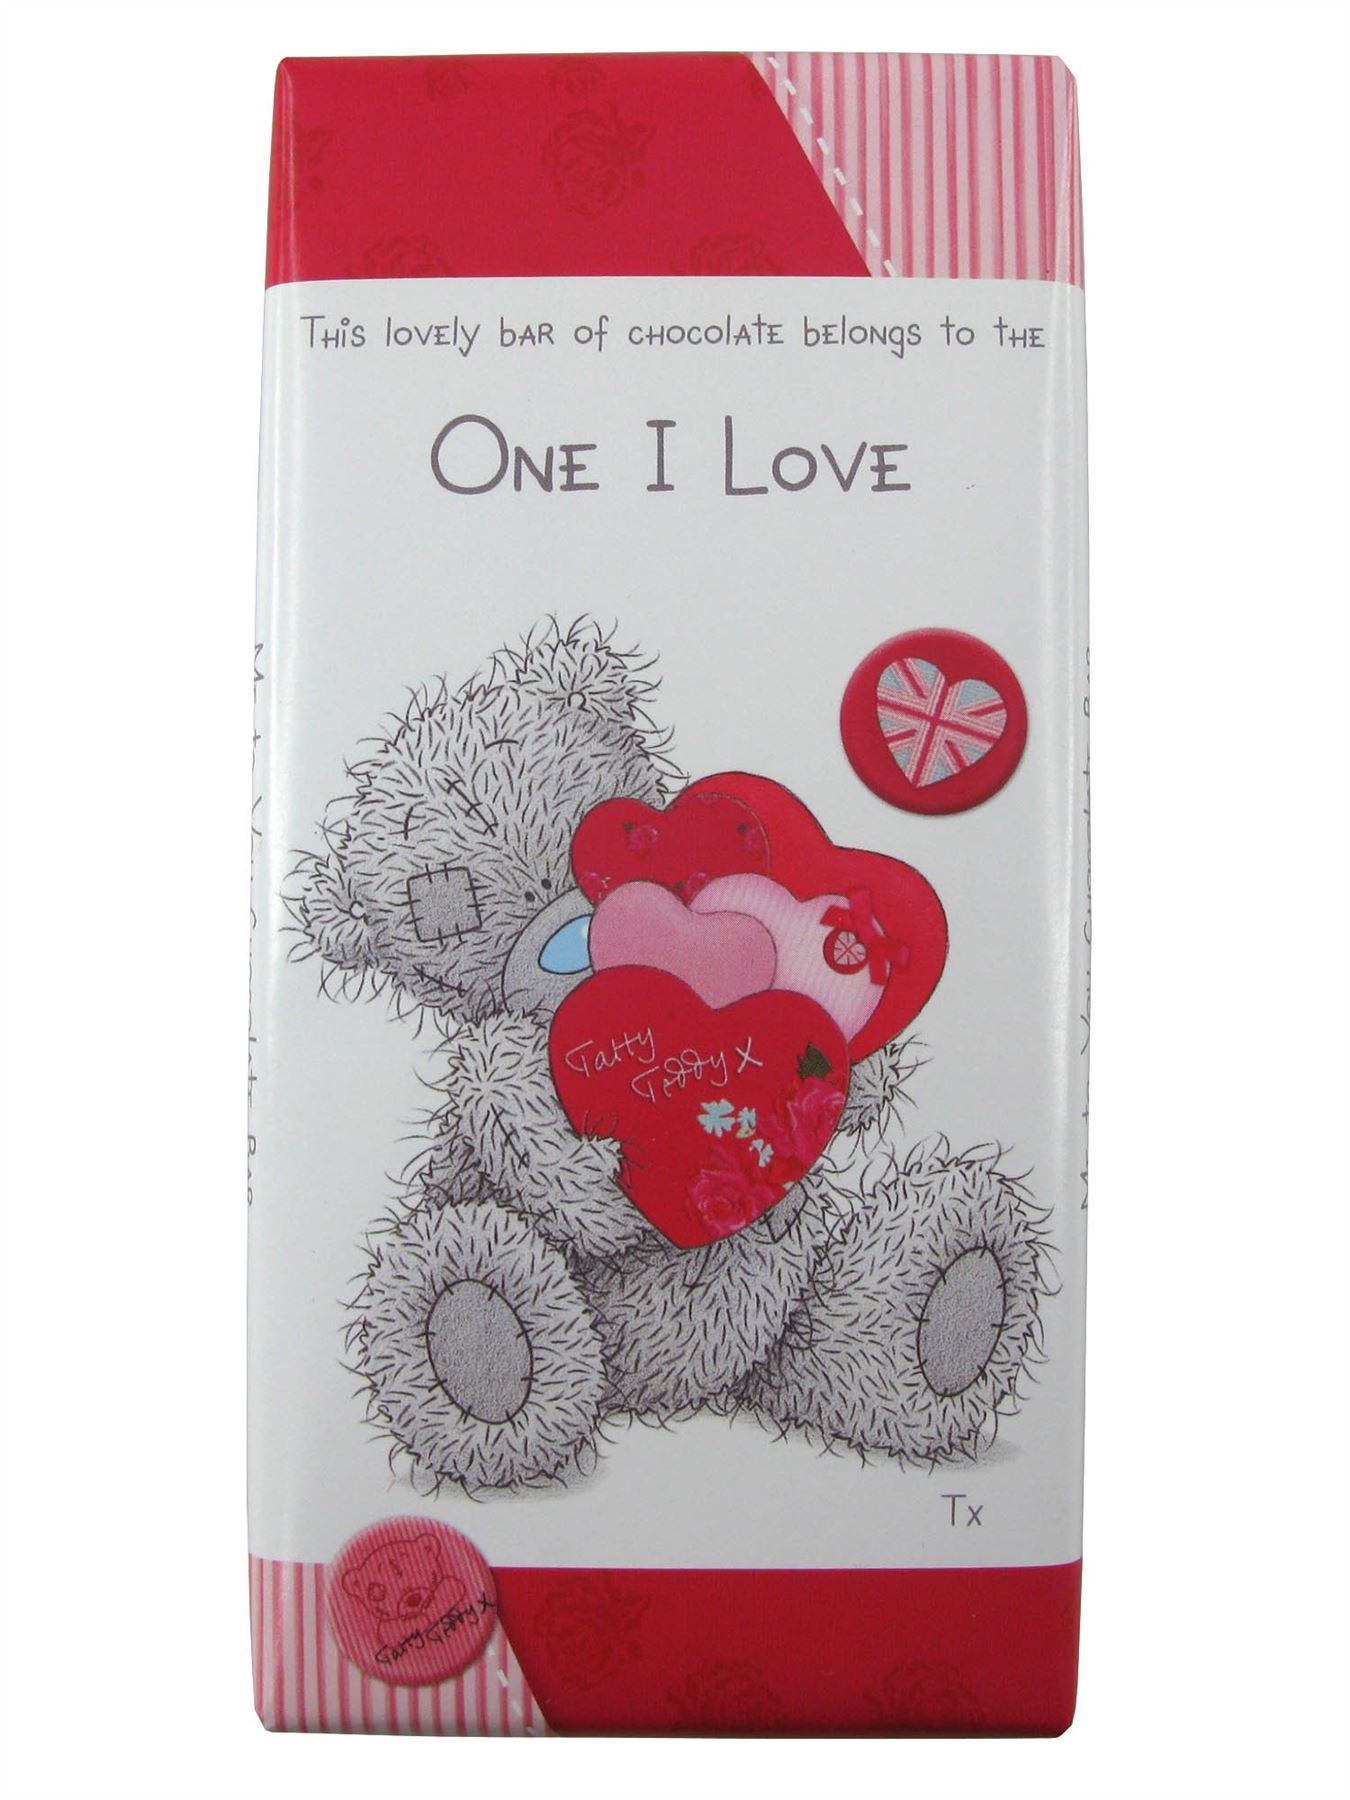 Duplicate Invoice In Quickbooks Pdf Me To You Romantic Bears  Gift Ideas Valentines Day Variety Tatty  Bookkeeping Invoice Word with Lic Receipt Word Metoyouromanticbearsampgiftideas Sample Invoices For Services Pdf